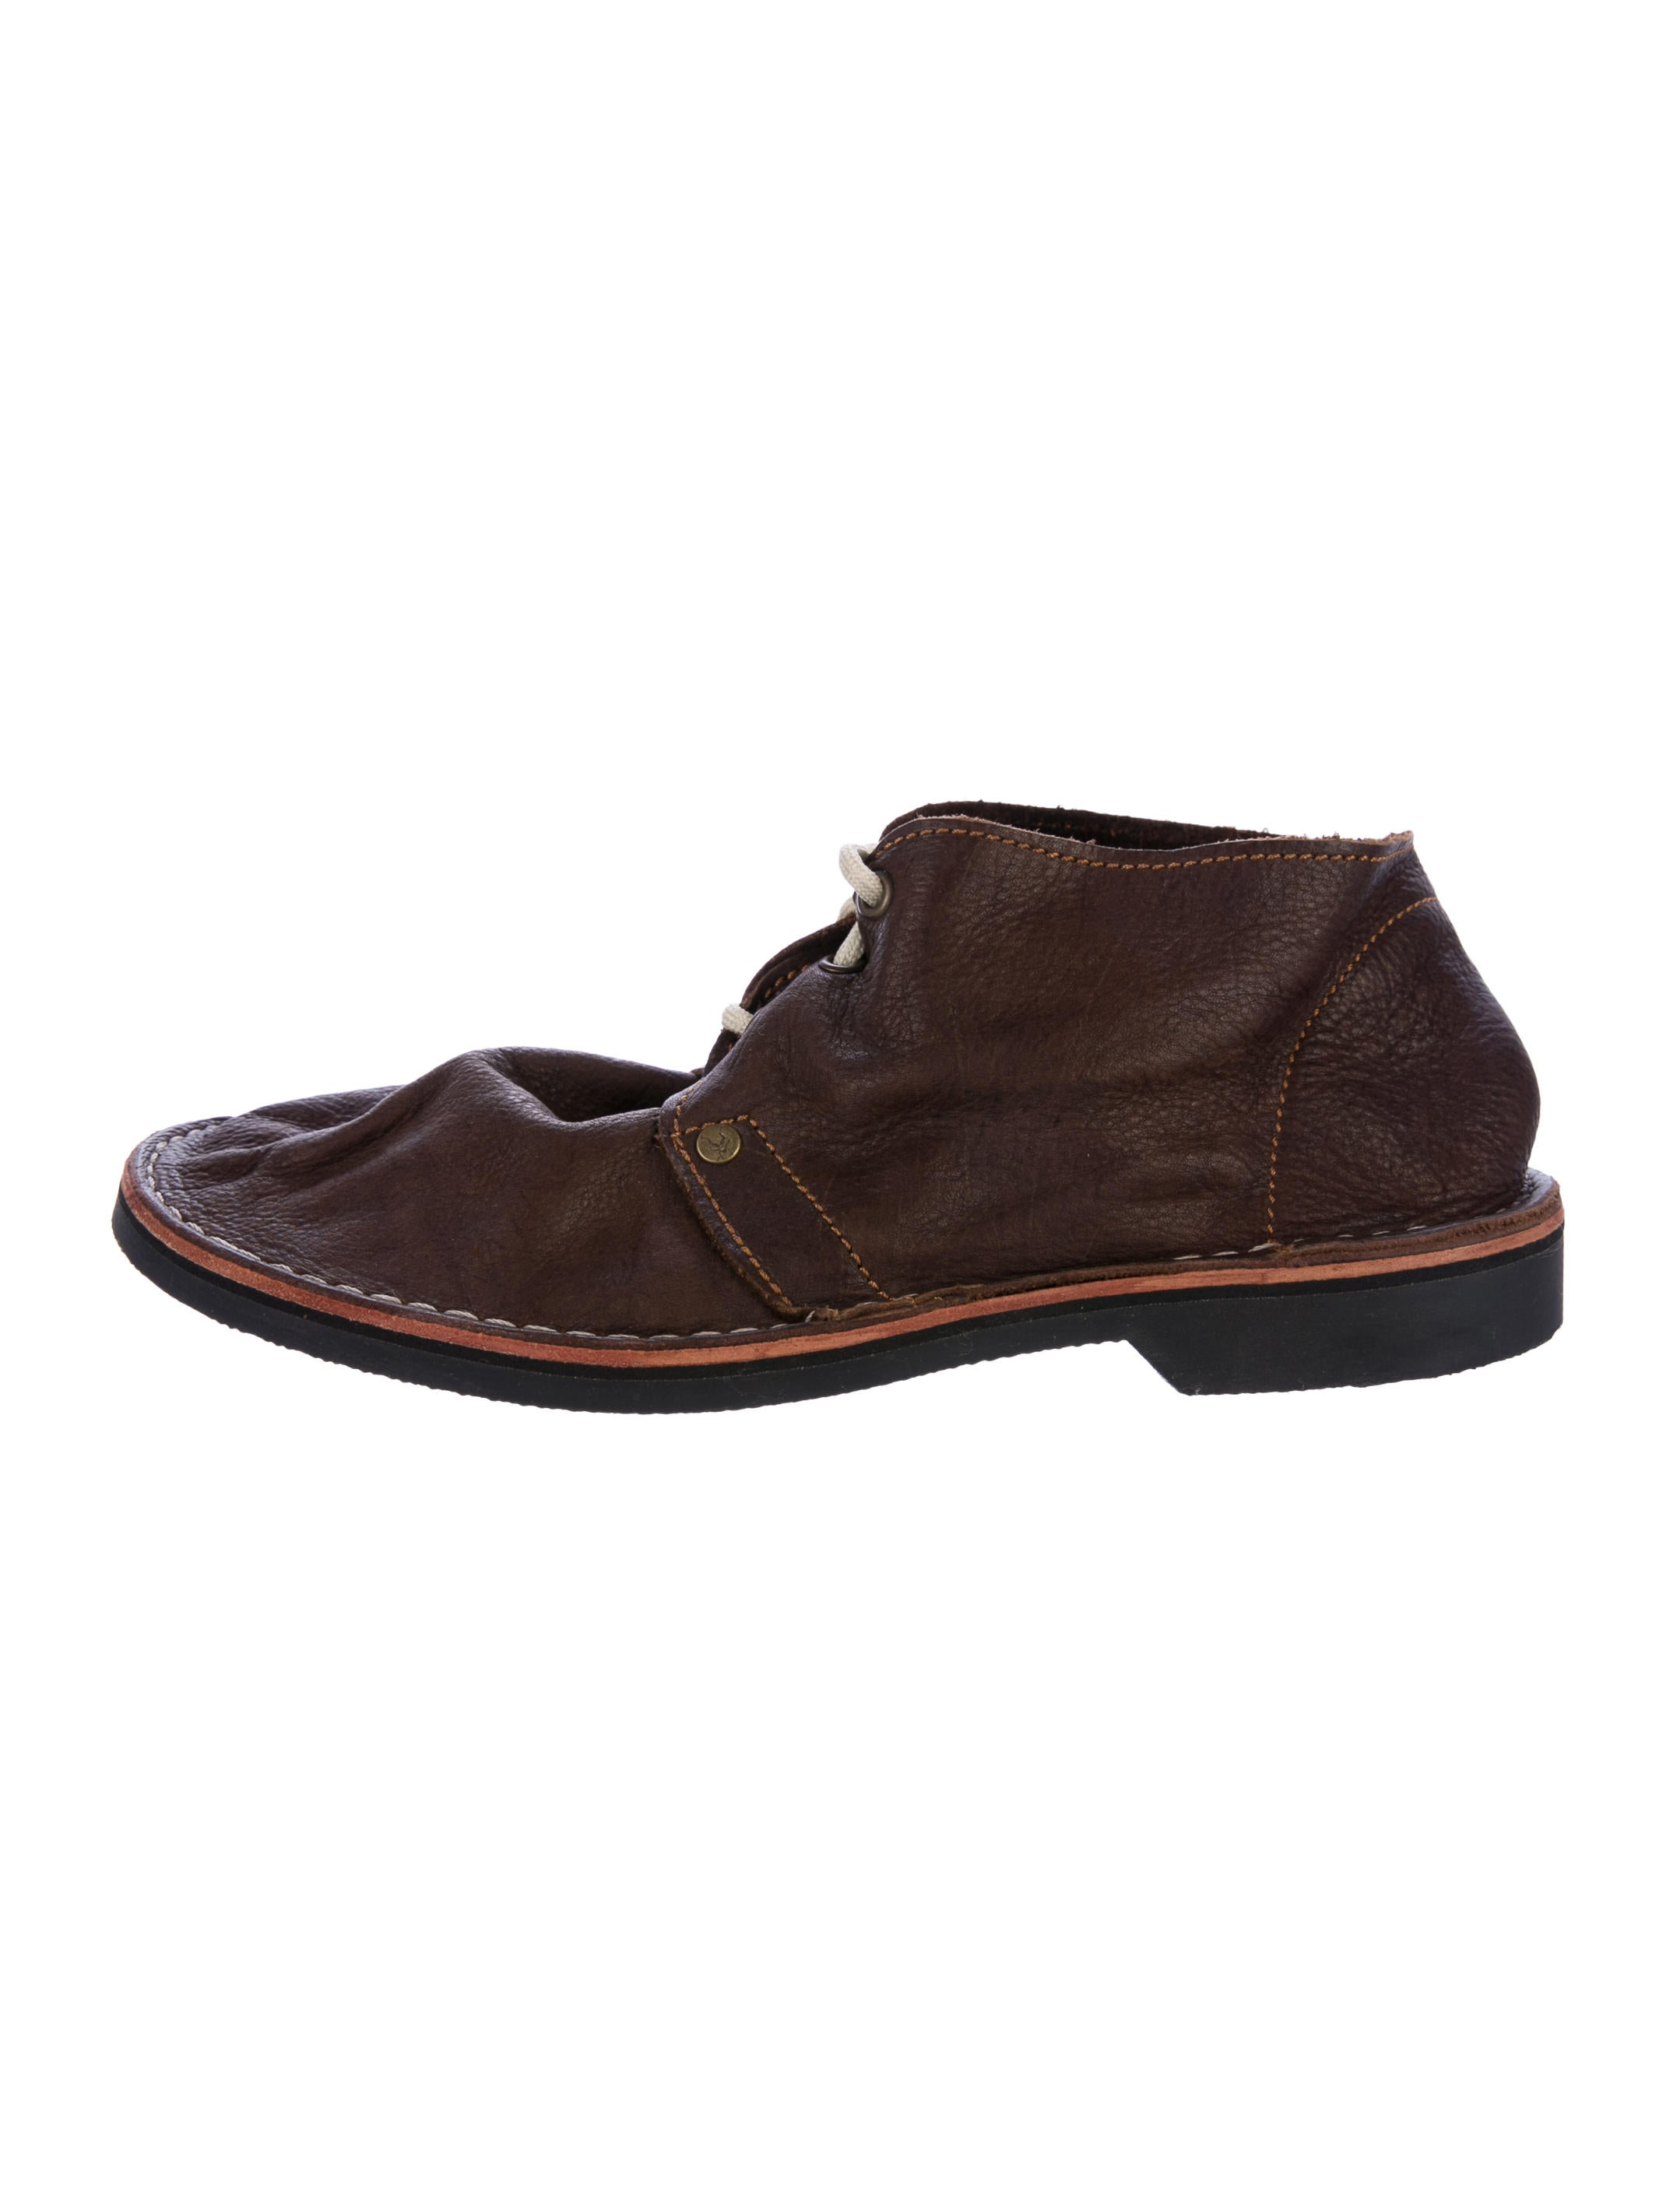 Brother Vellies Leather Round-Toe Booties outlet locations cheap price cheap sale for nice how much cheap price clearance real fEYGLu